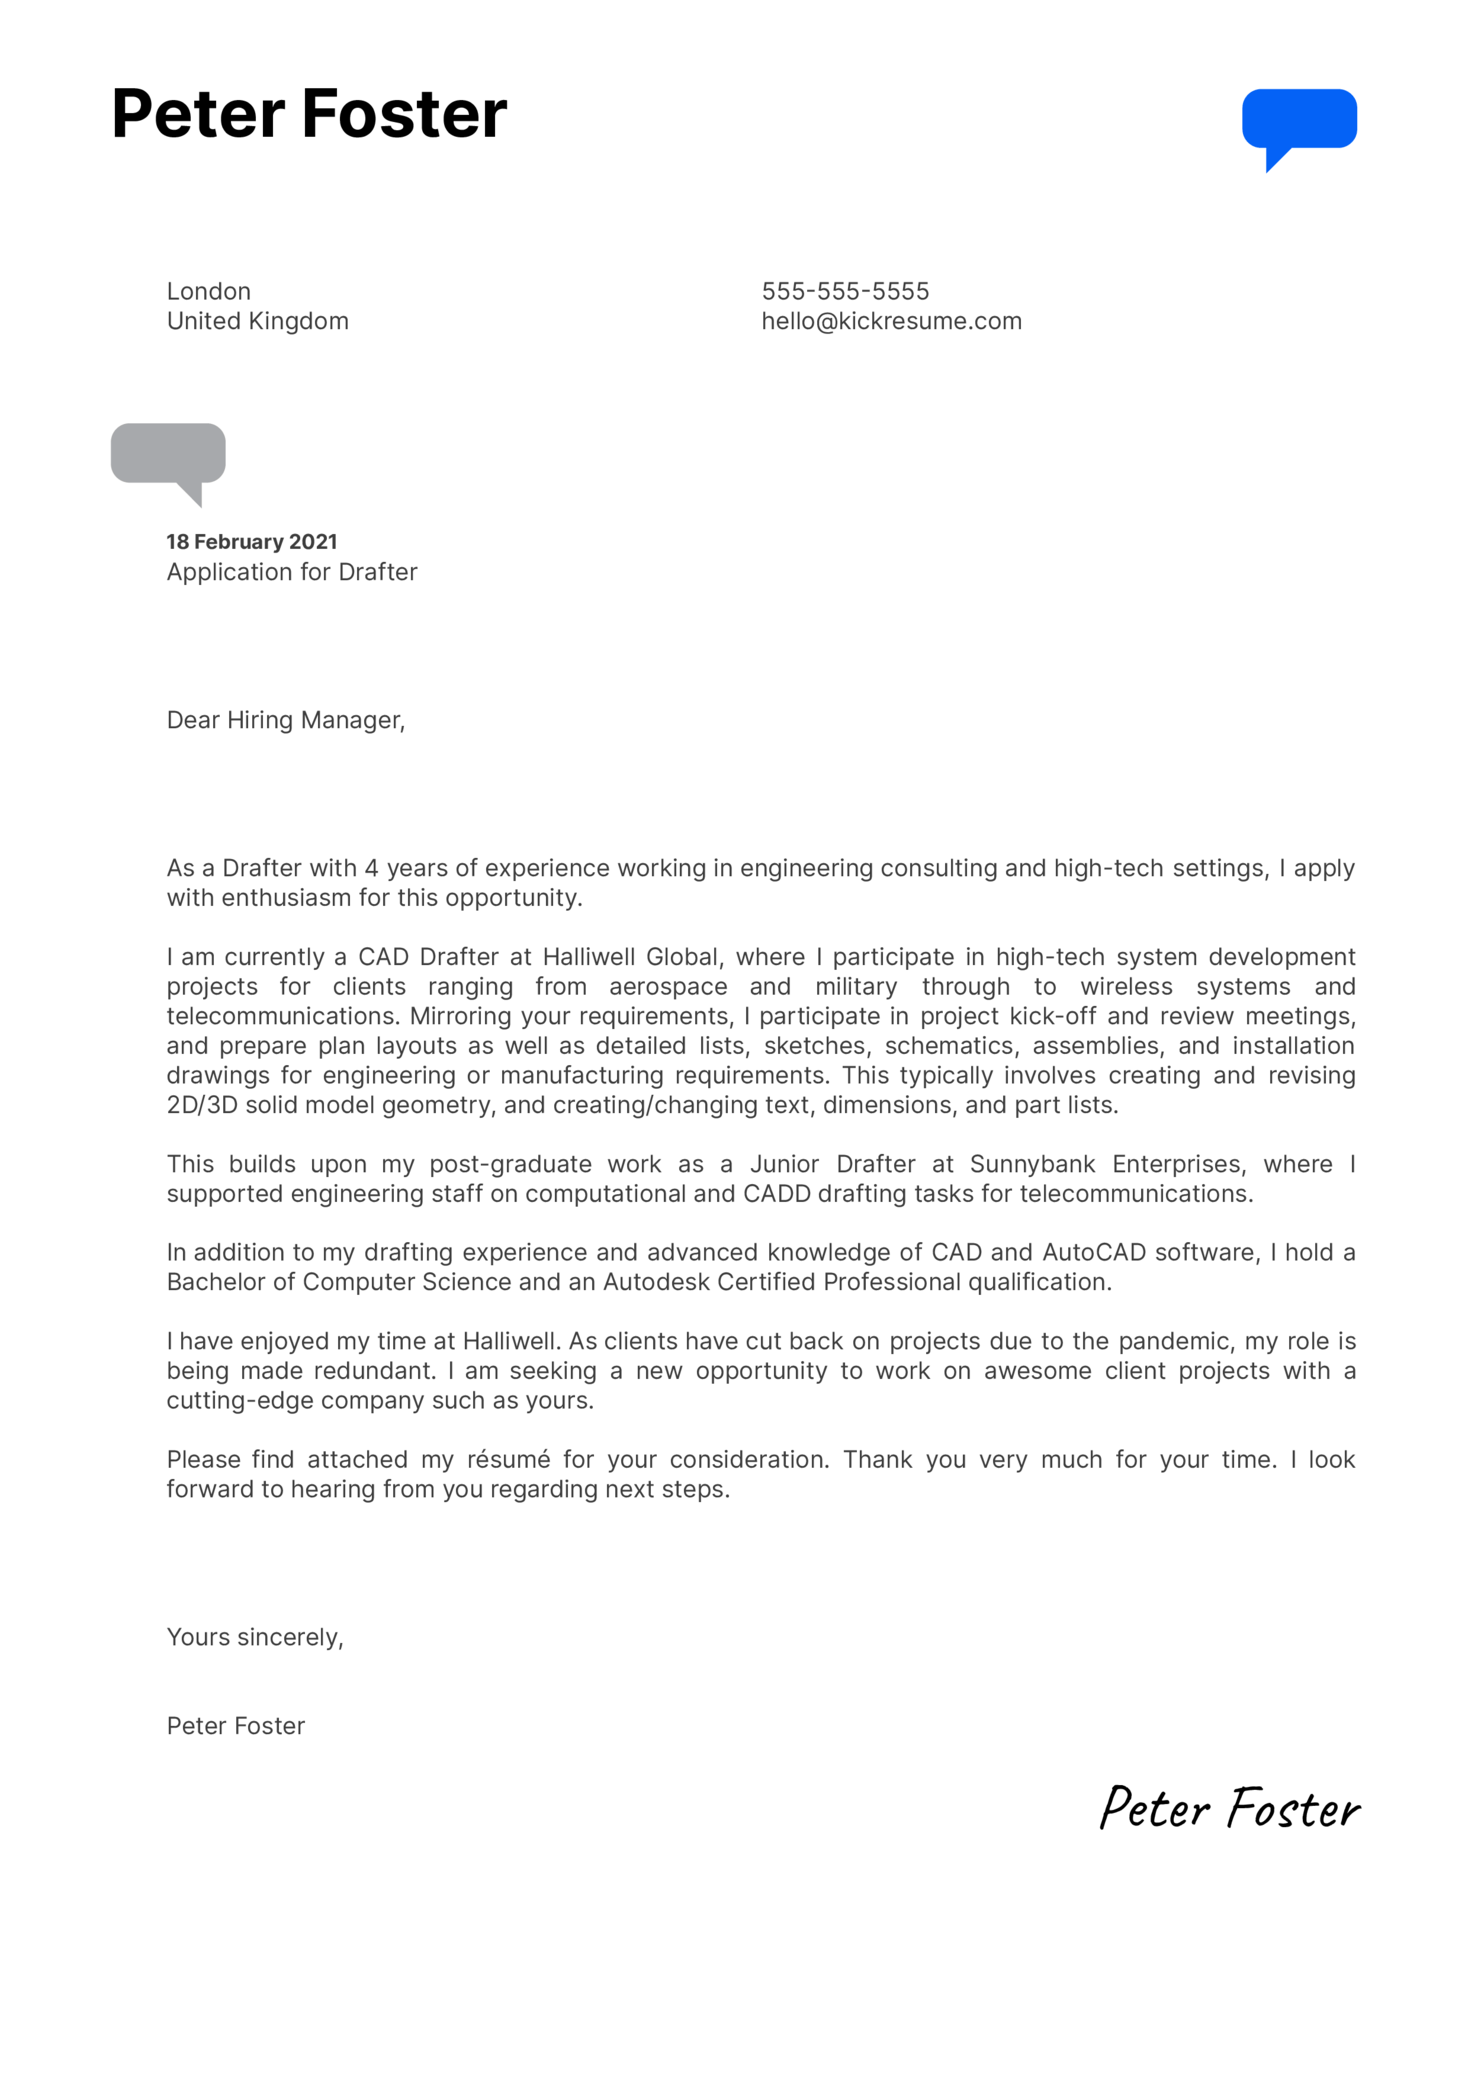 Drafter Cover Letter Sample